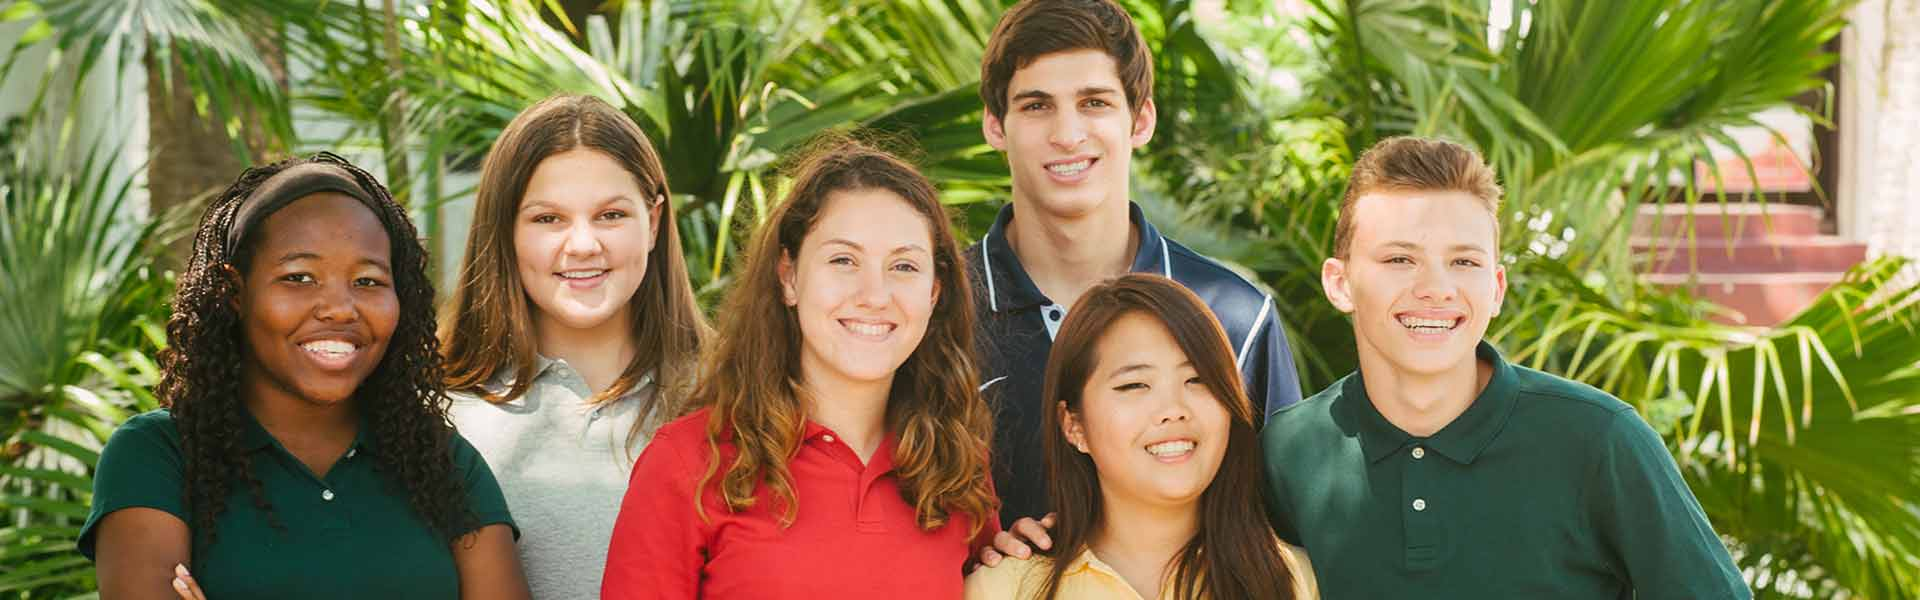 Students attending Florida Prep, in Florida.